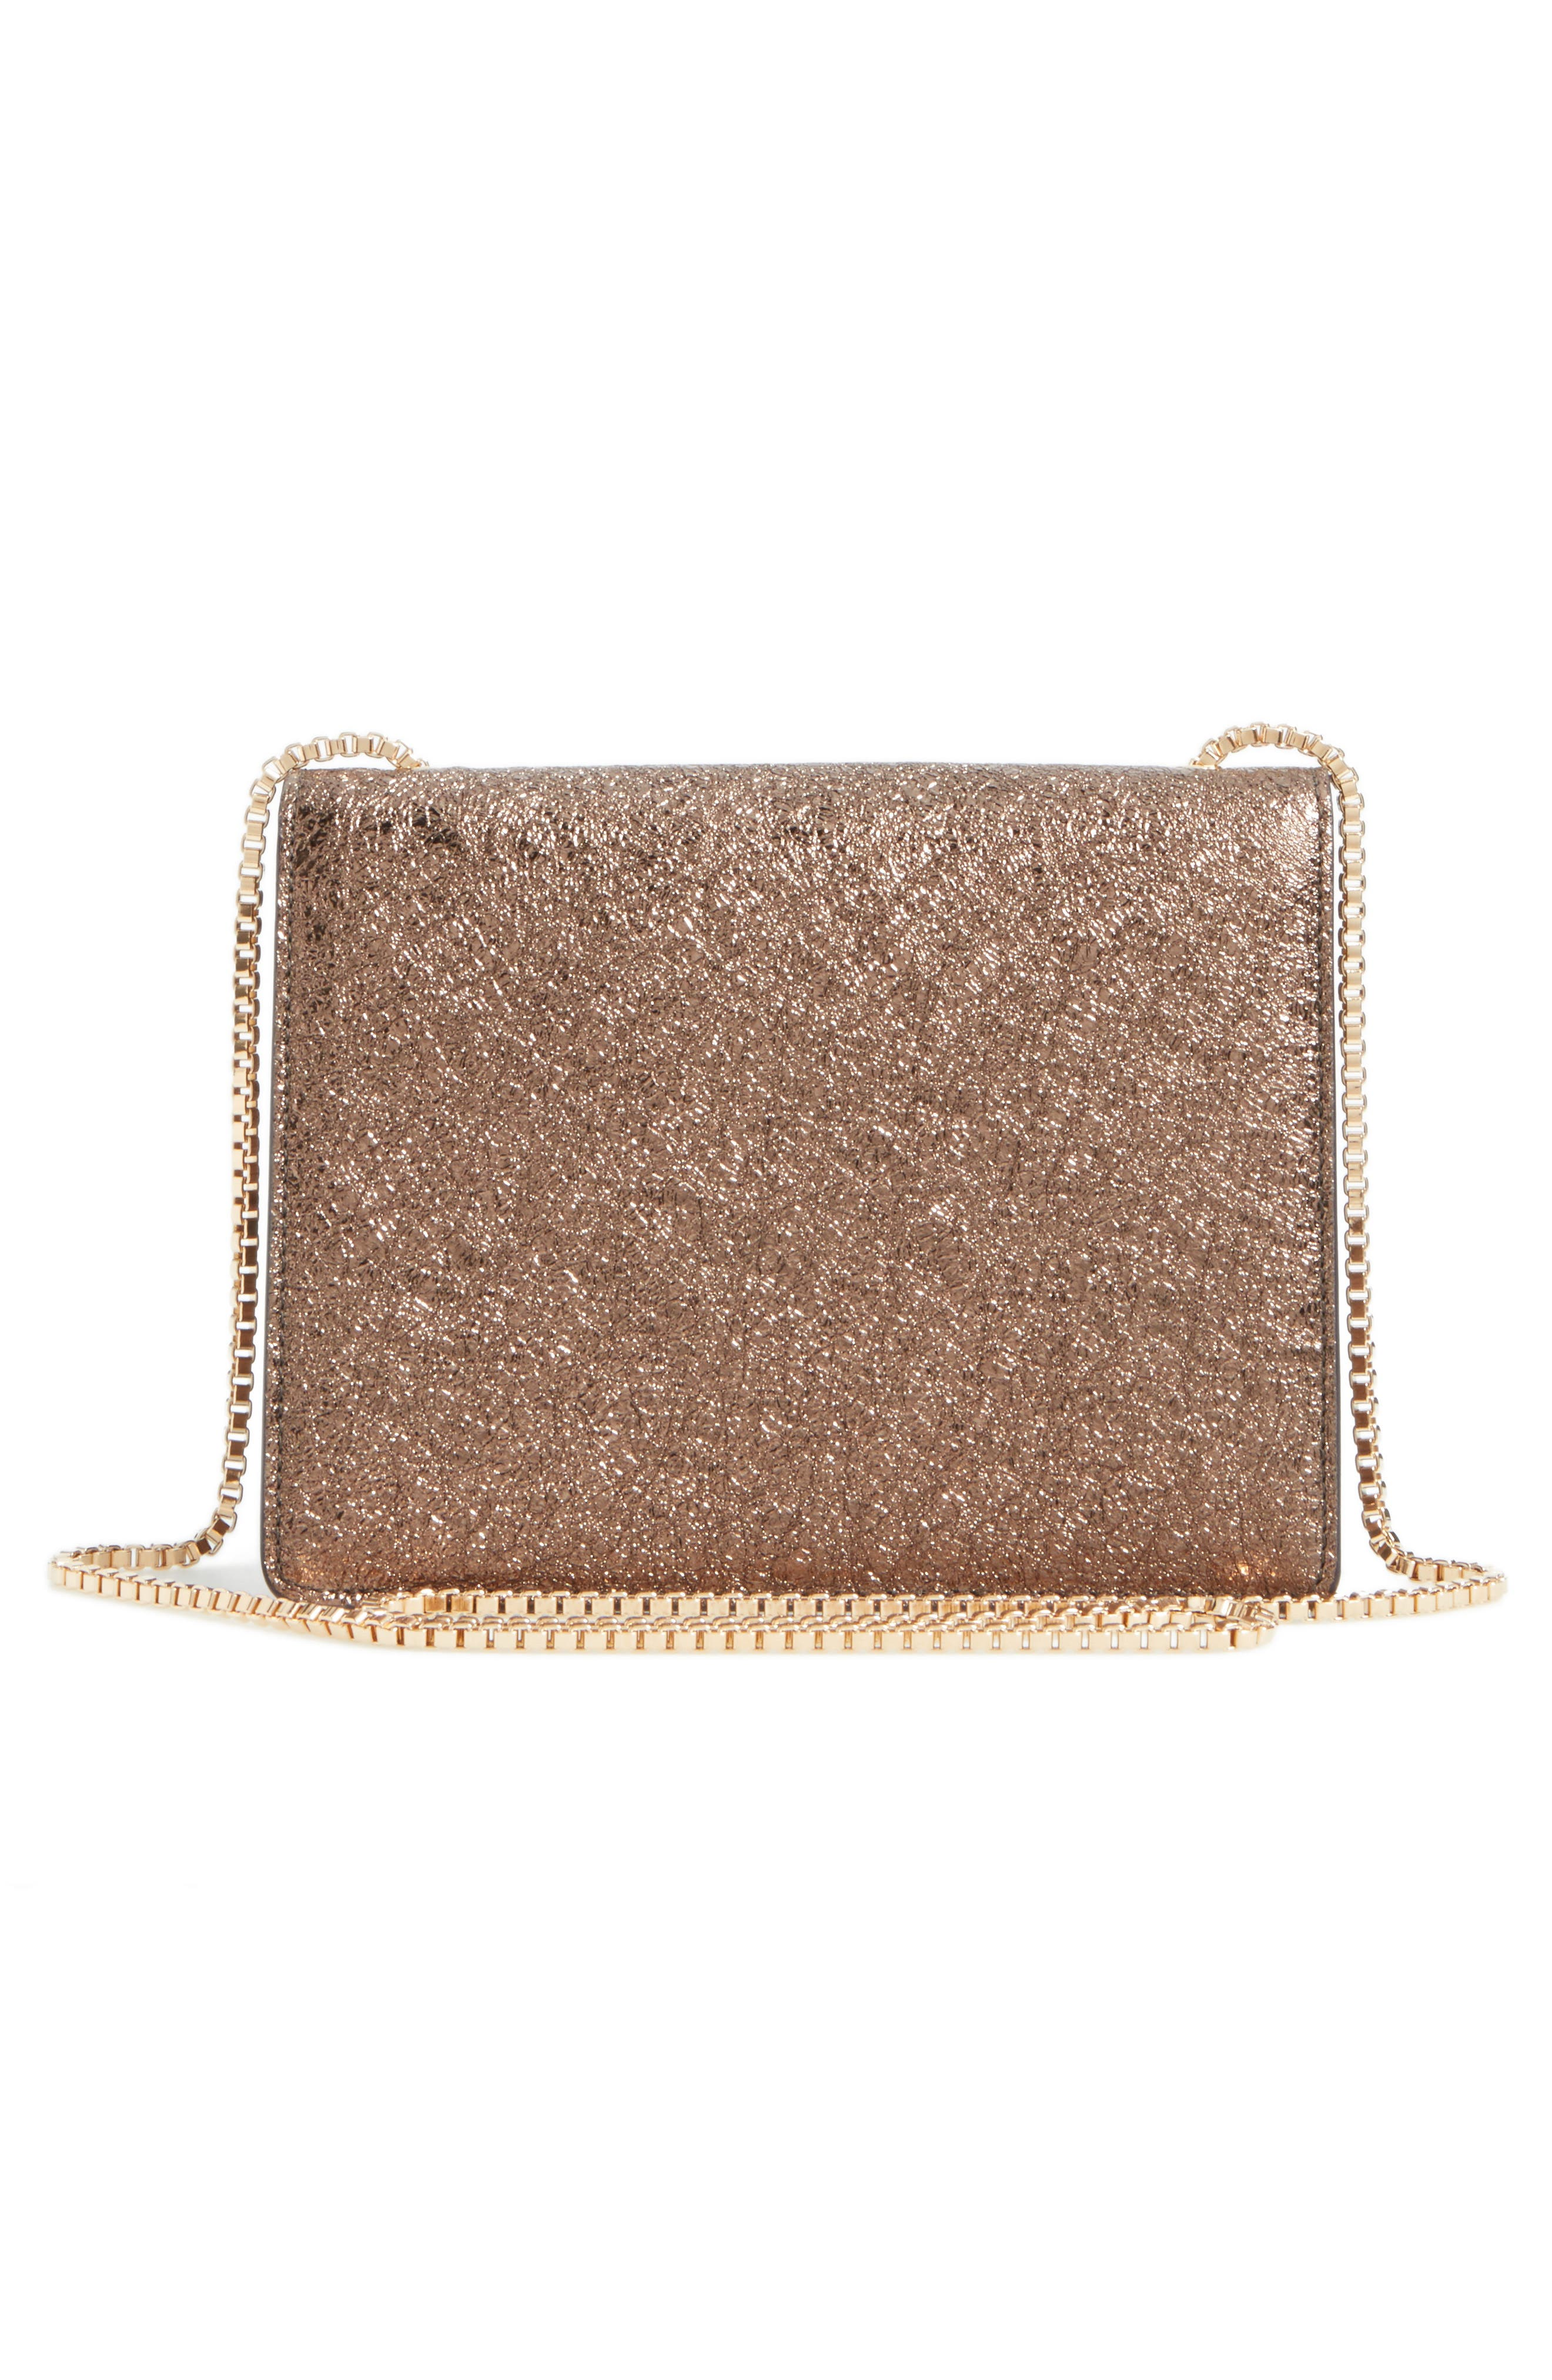 Alternate Image 3  - Salvatore Ferragamo Small Metallic Leather Chain Shoulder Bag